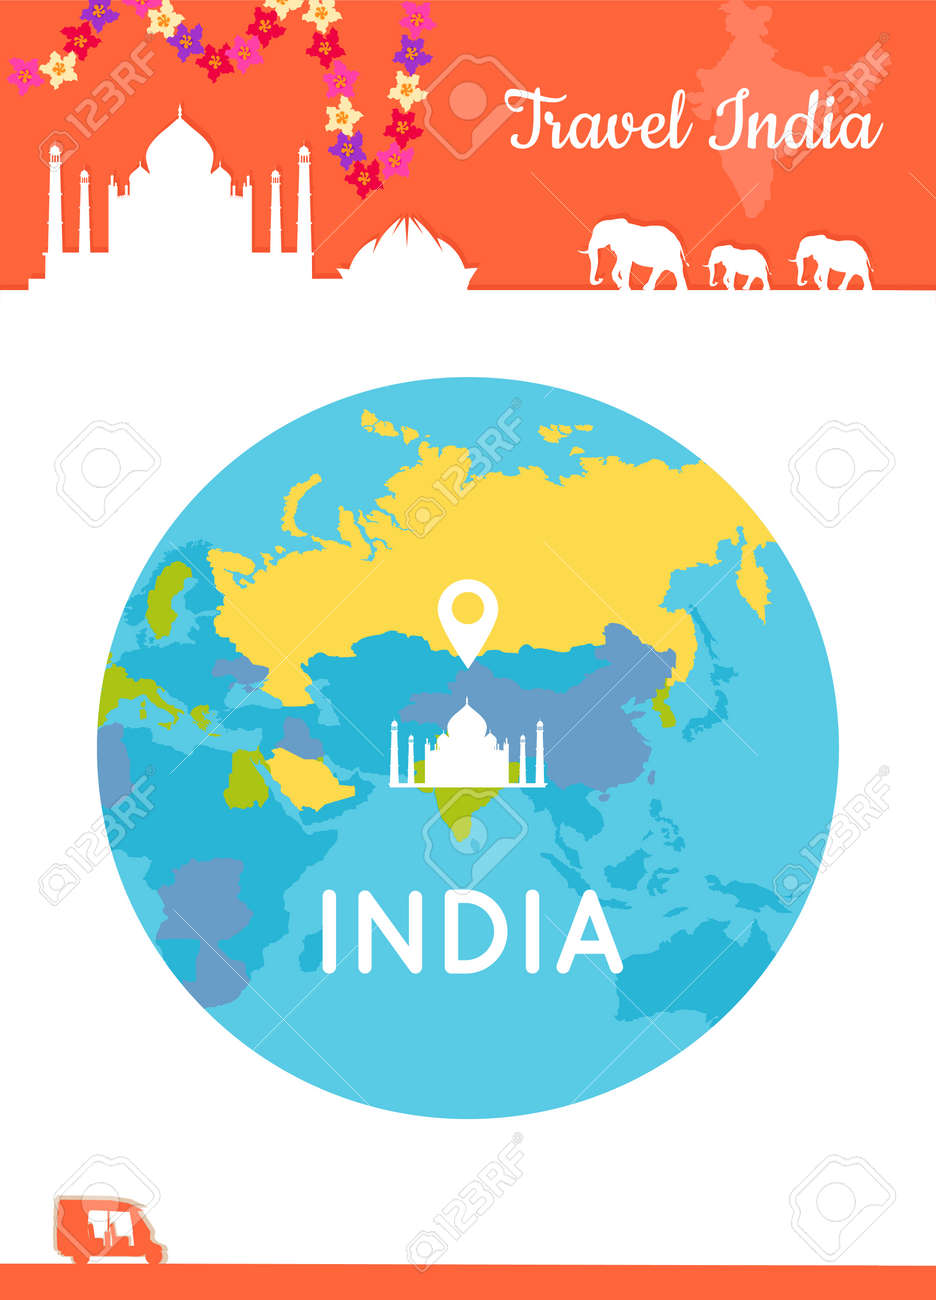 Travel India Konzeptionellen Plakat In Flachen Stil Design ...